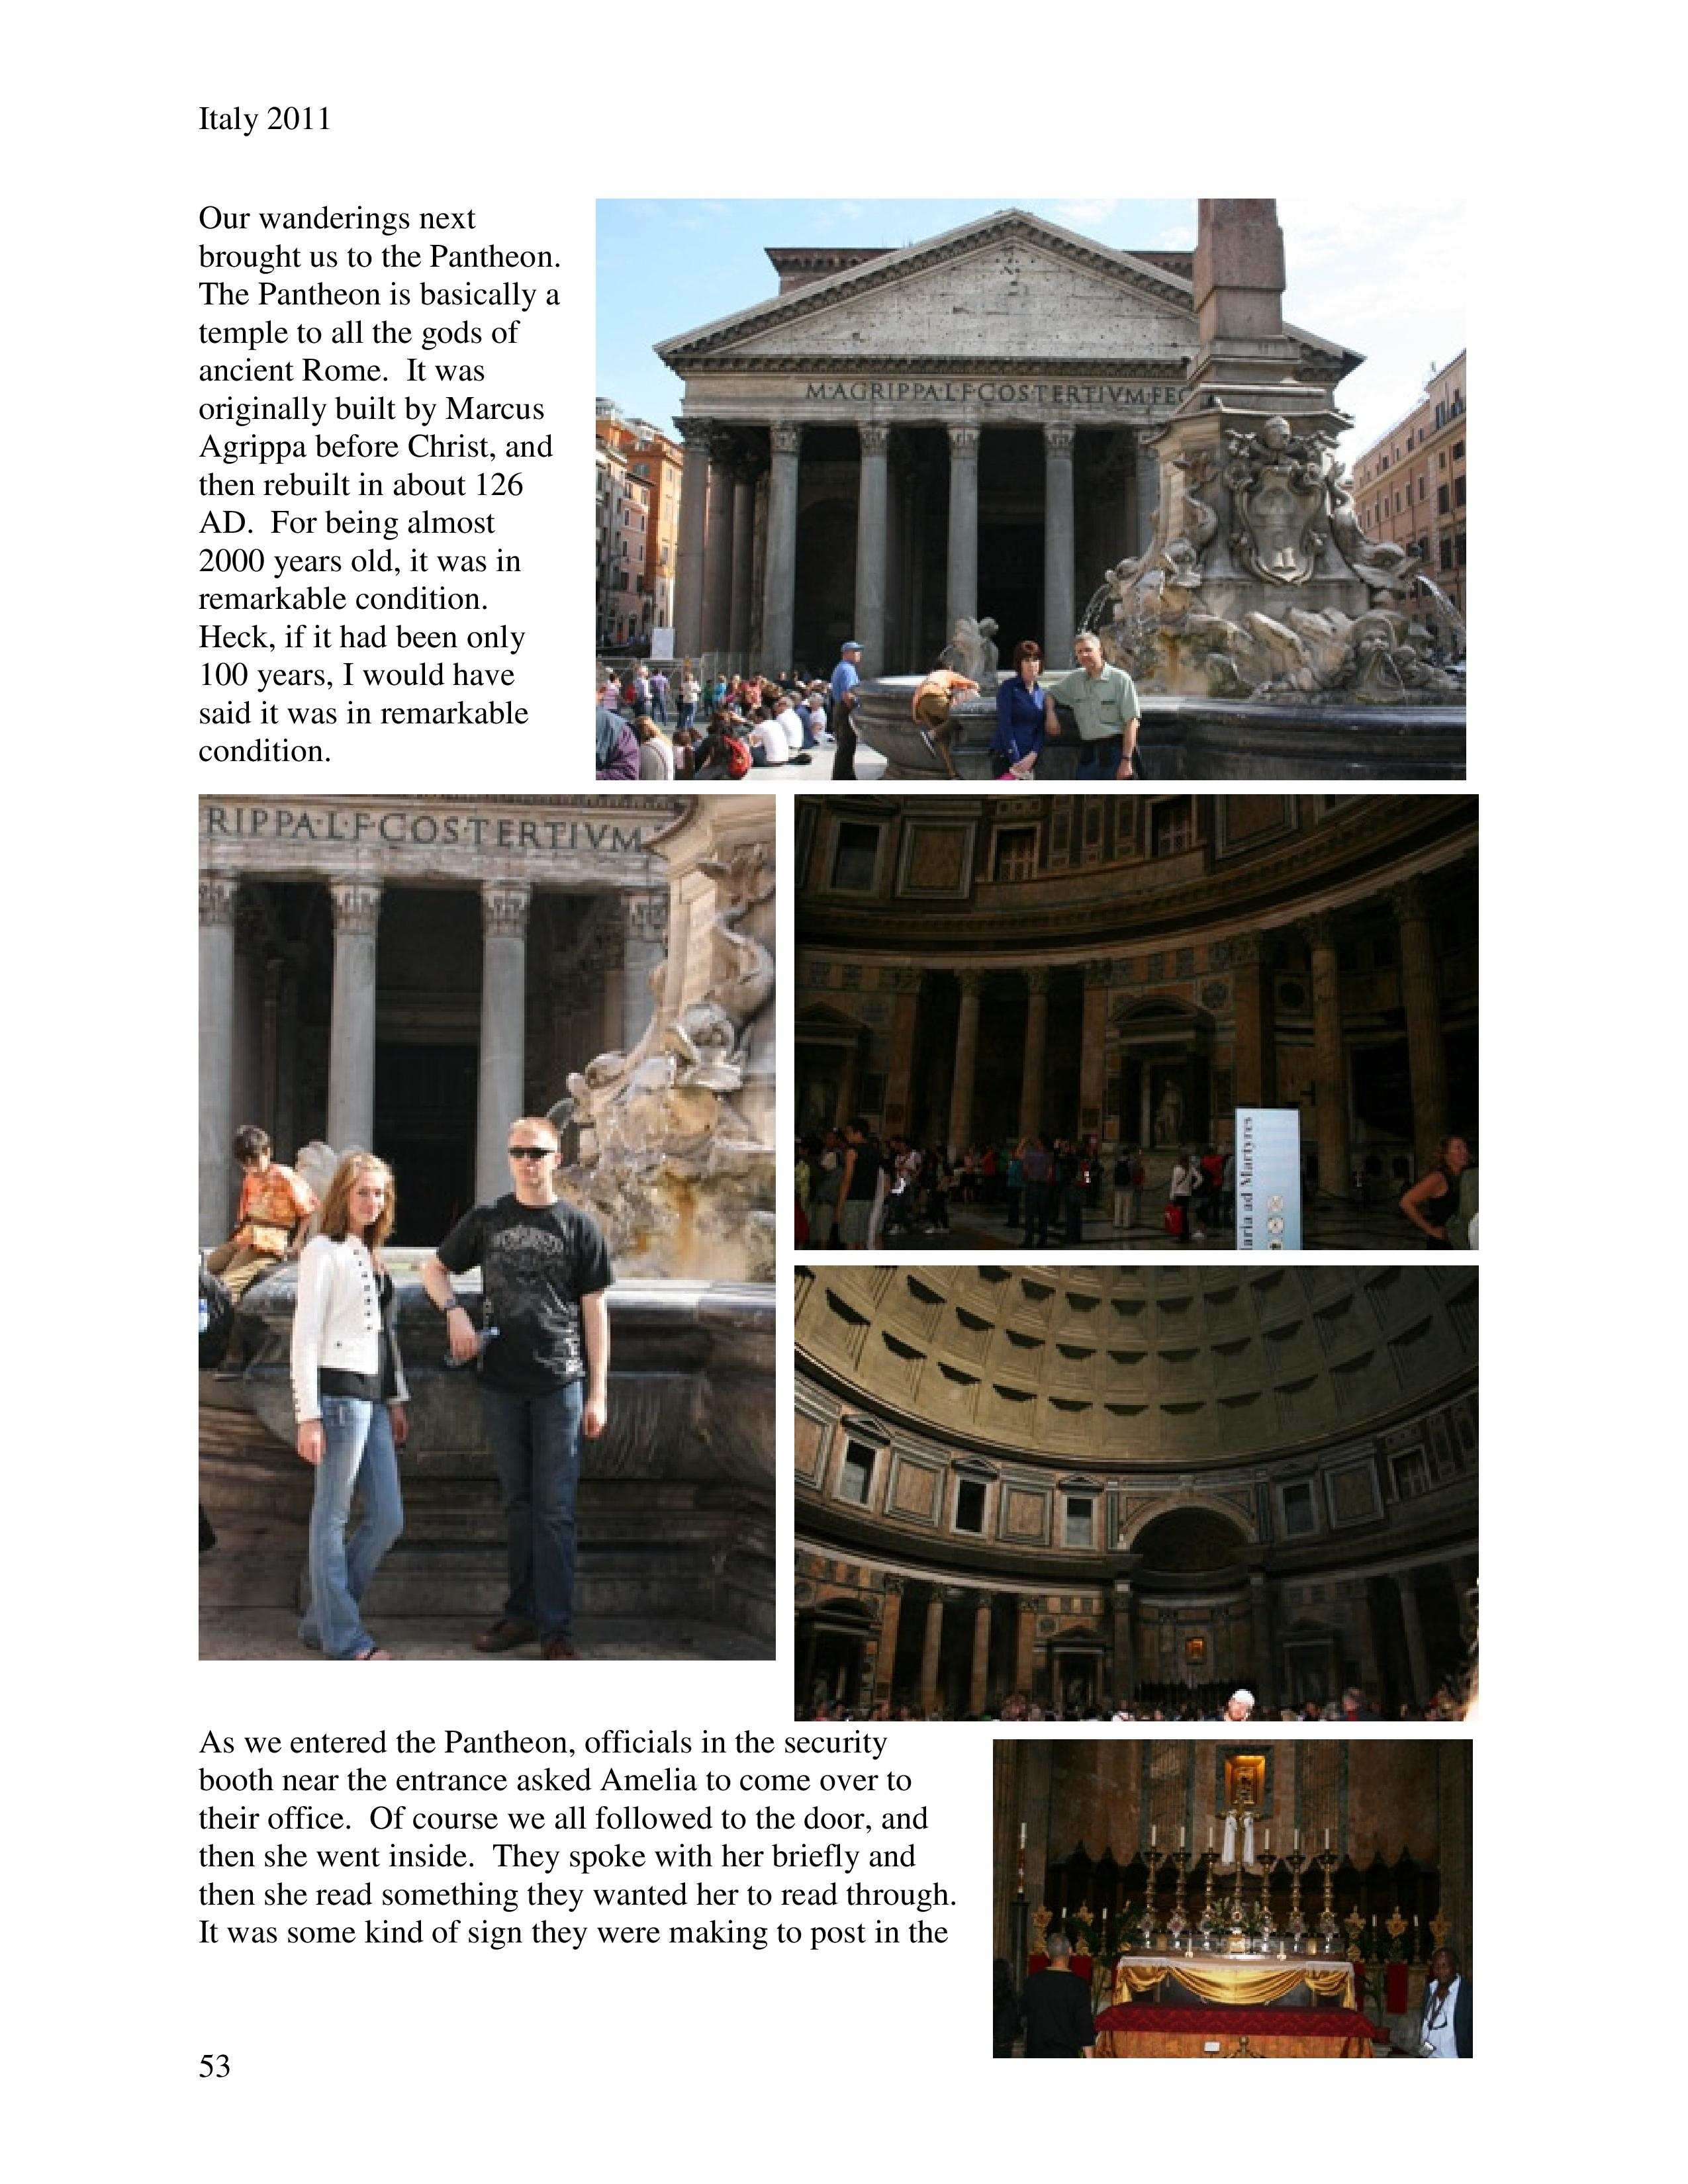 Italy 2011 May 3 - Day 5-page-012